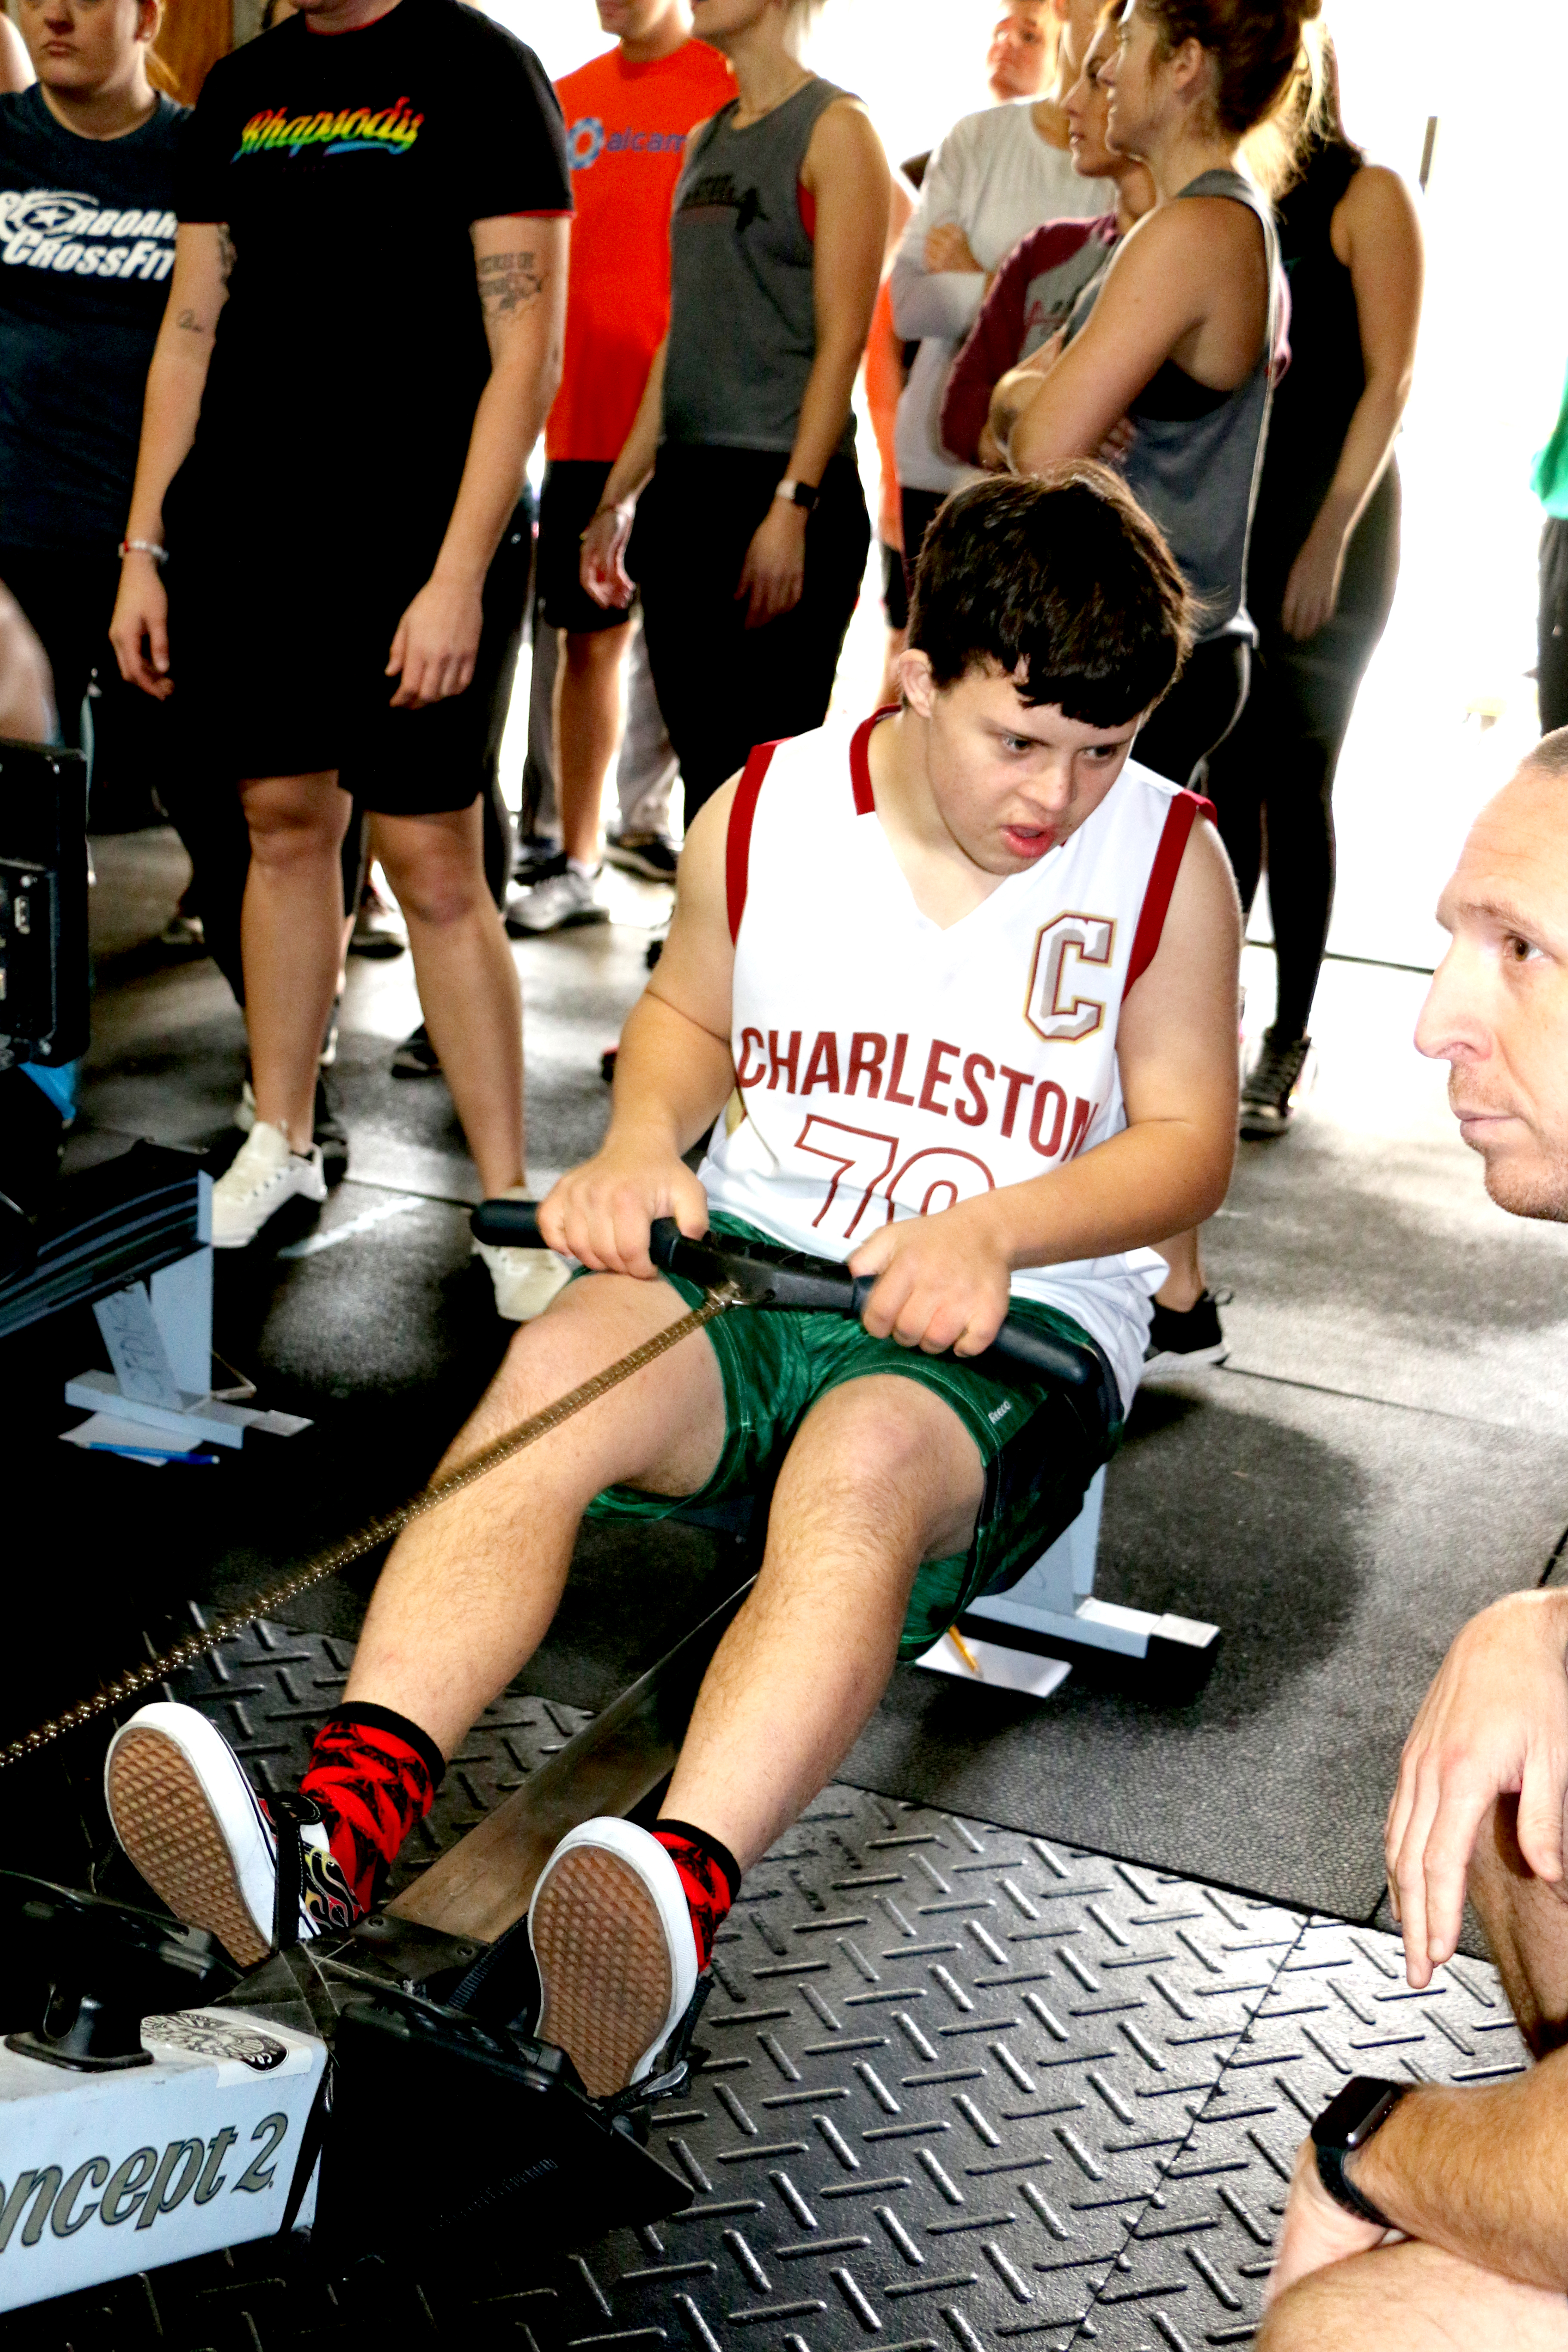 Special Olympian Grant Baker gets a word of advice from a coach as he rows.